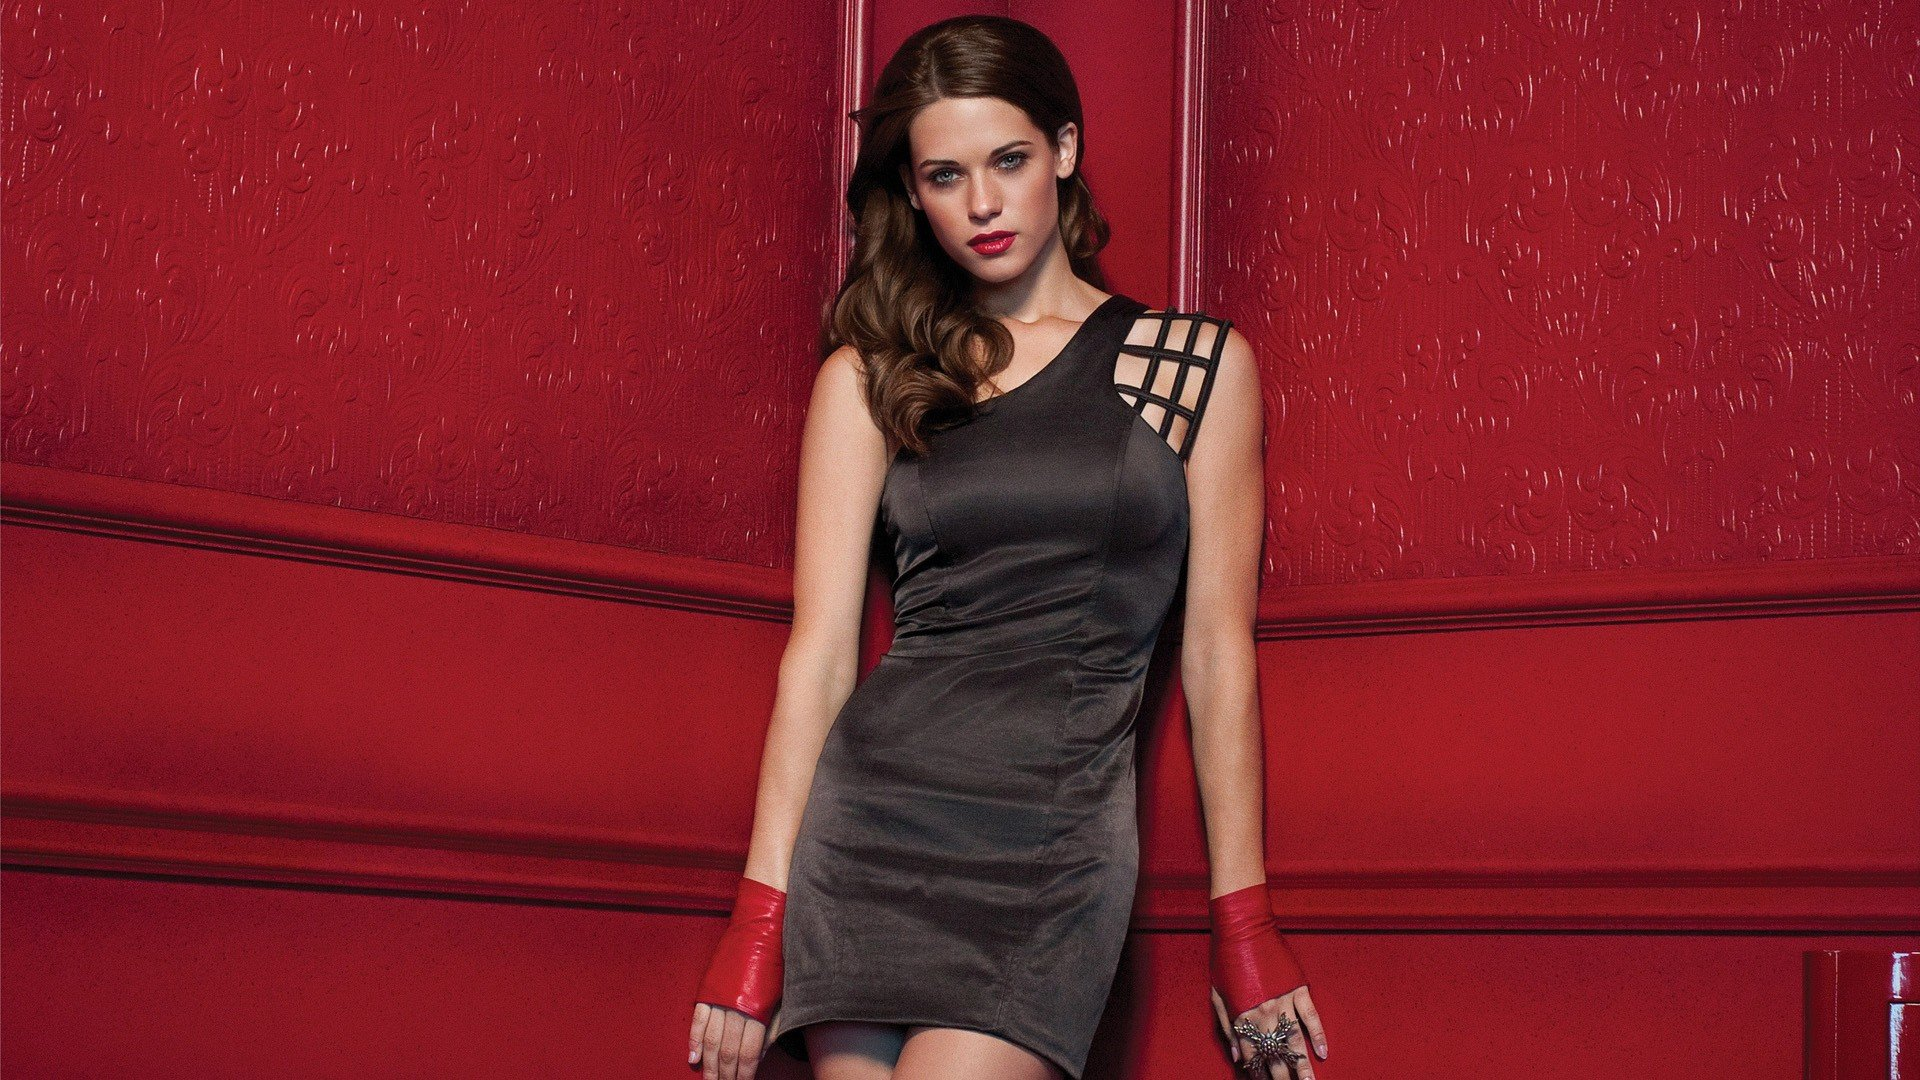 Free download Lyndsy Fonseca background ID:246191 full hd for computer